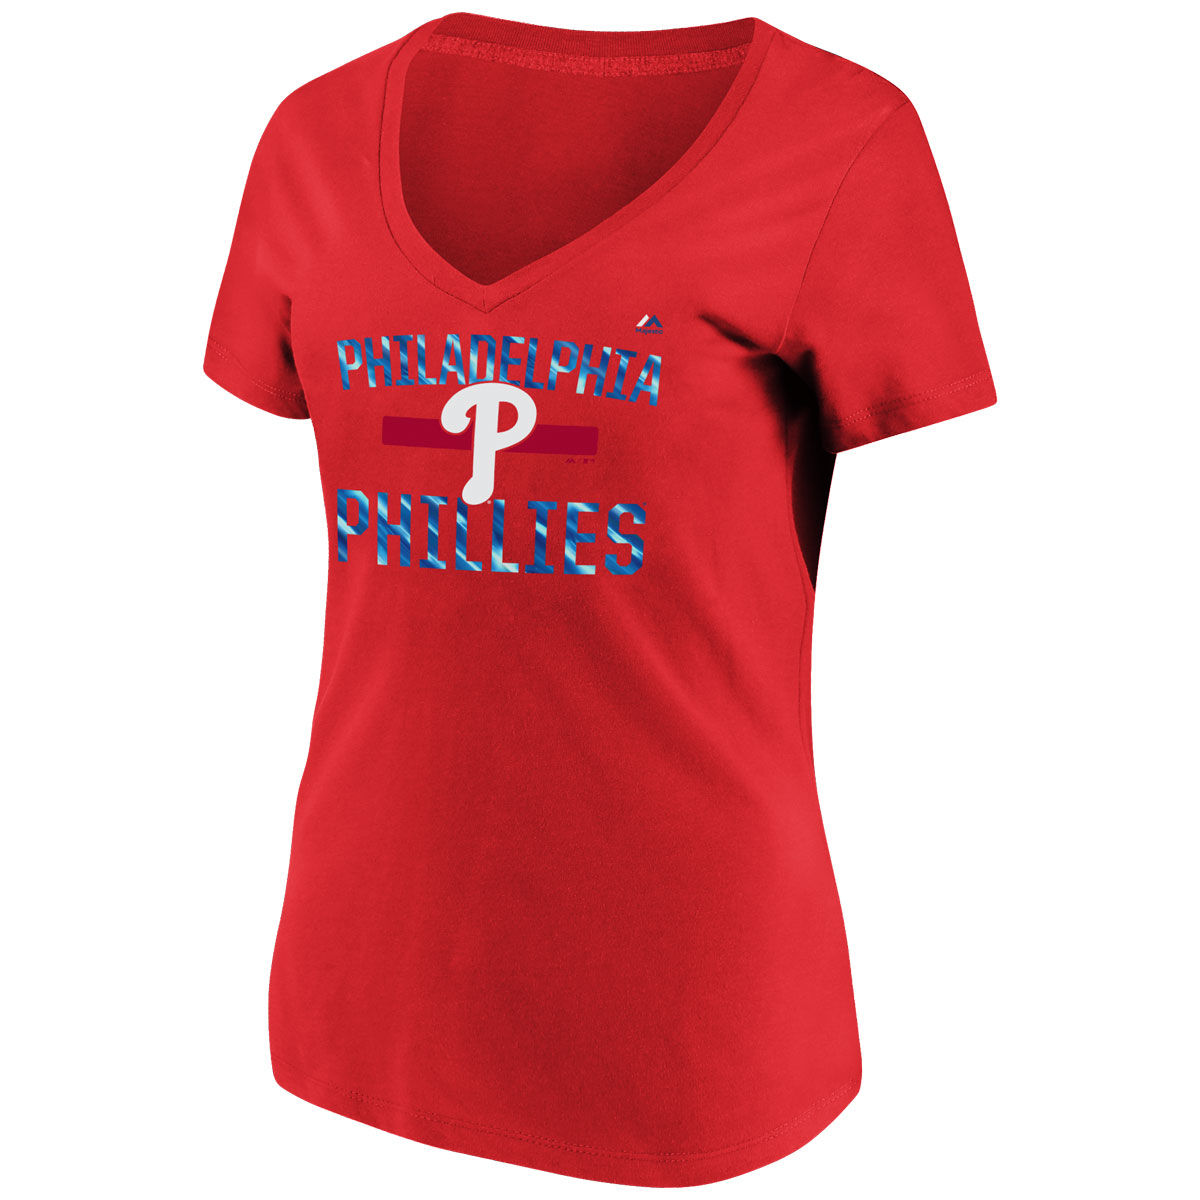 Philadelphia Phillies Womens 2018 Relentless Attack T-Shirt